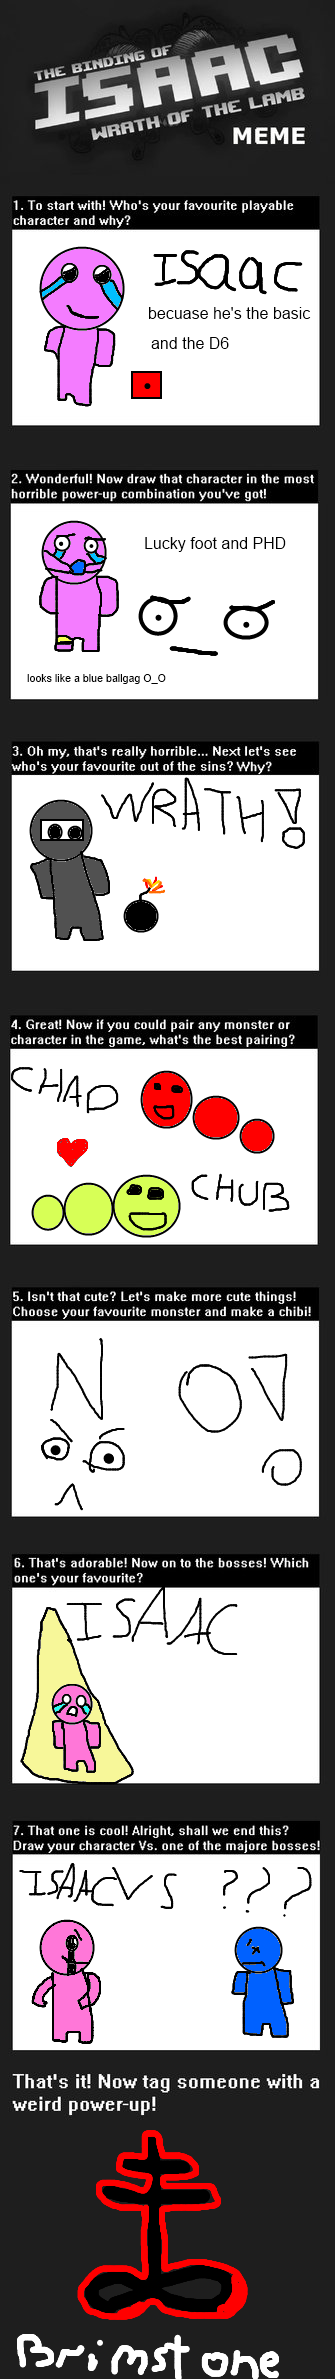 Binding Of Isaac Meme by thenoobster123